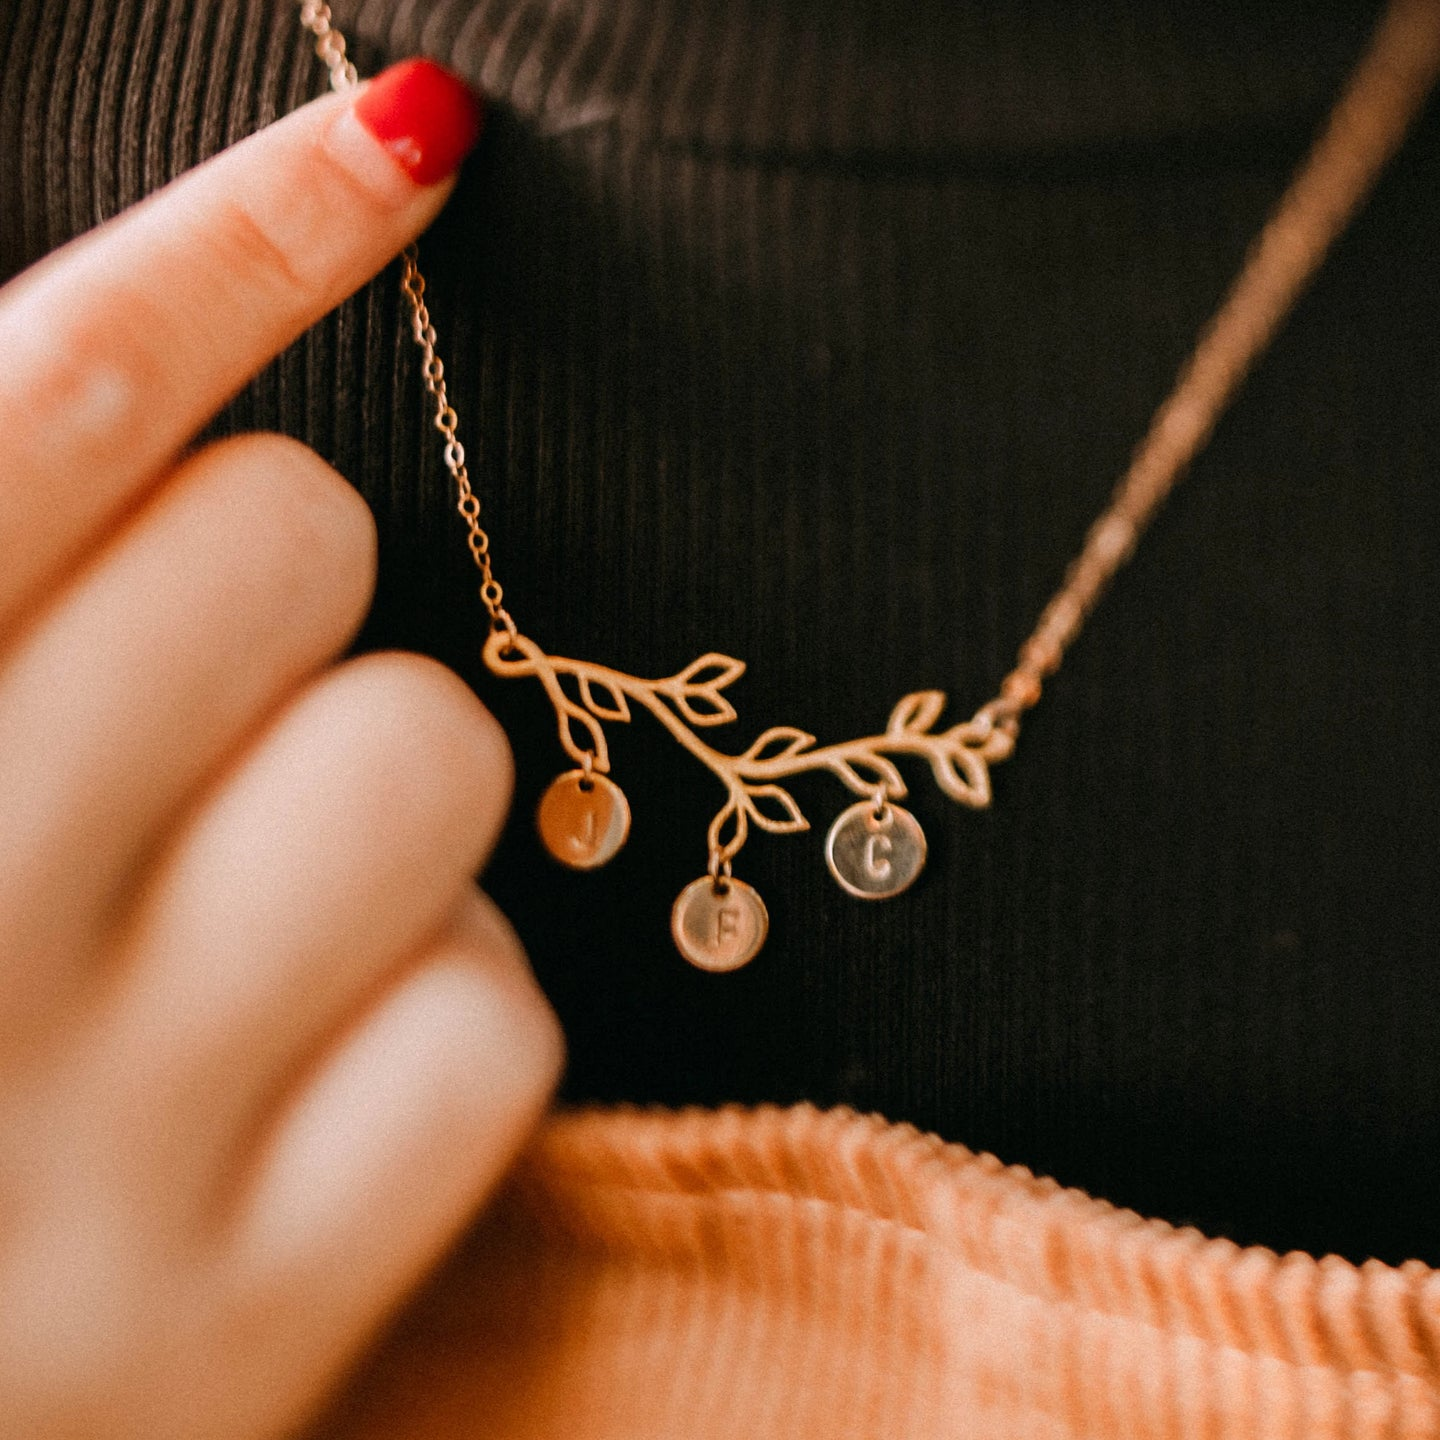 Olivia Personalized Branch Necklace with Hand-Stamped Initial Discs - 14k Gold Fill Chain